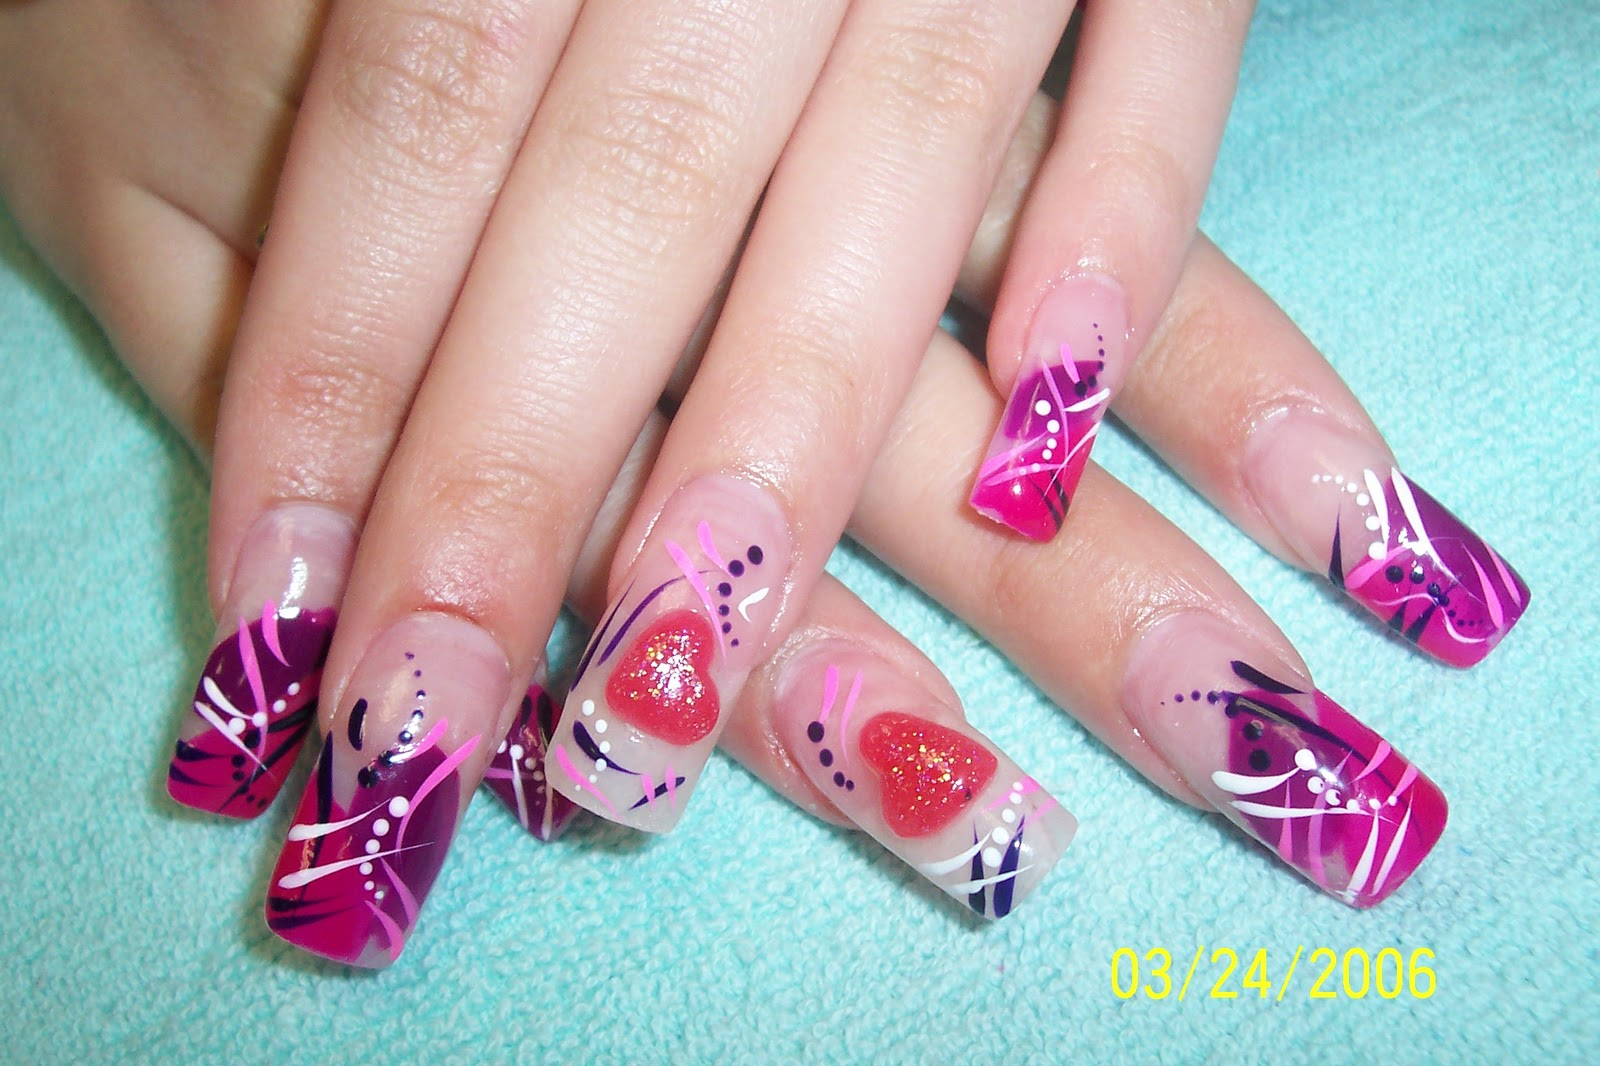 Great looking acrylic nail design with an attractive floral design